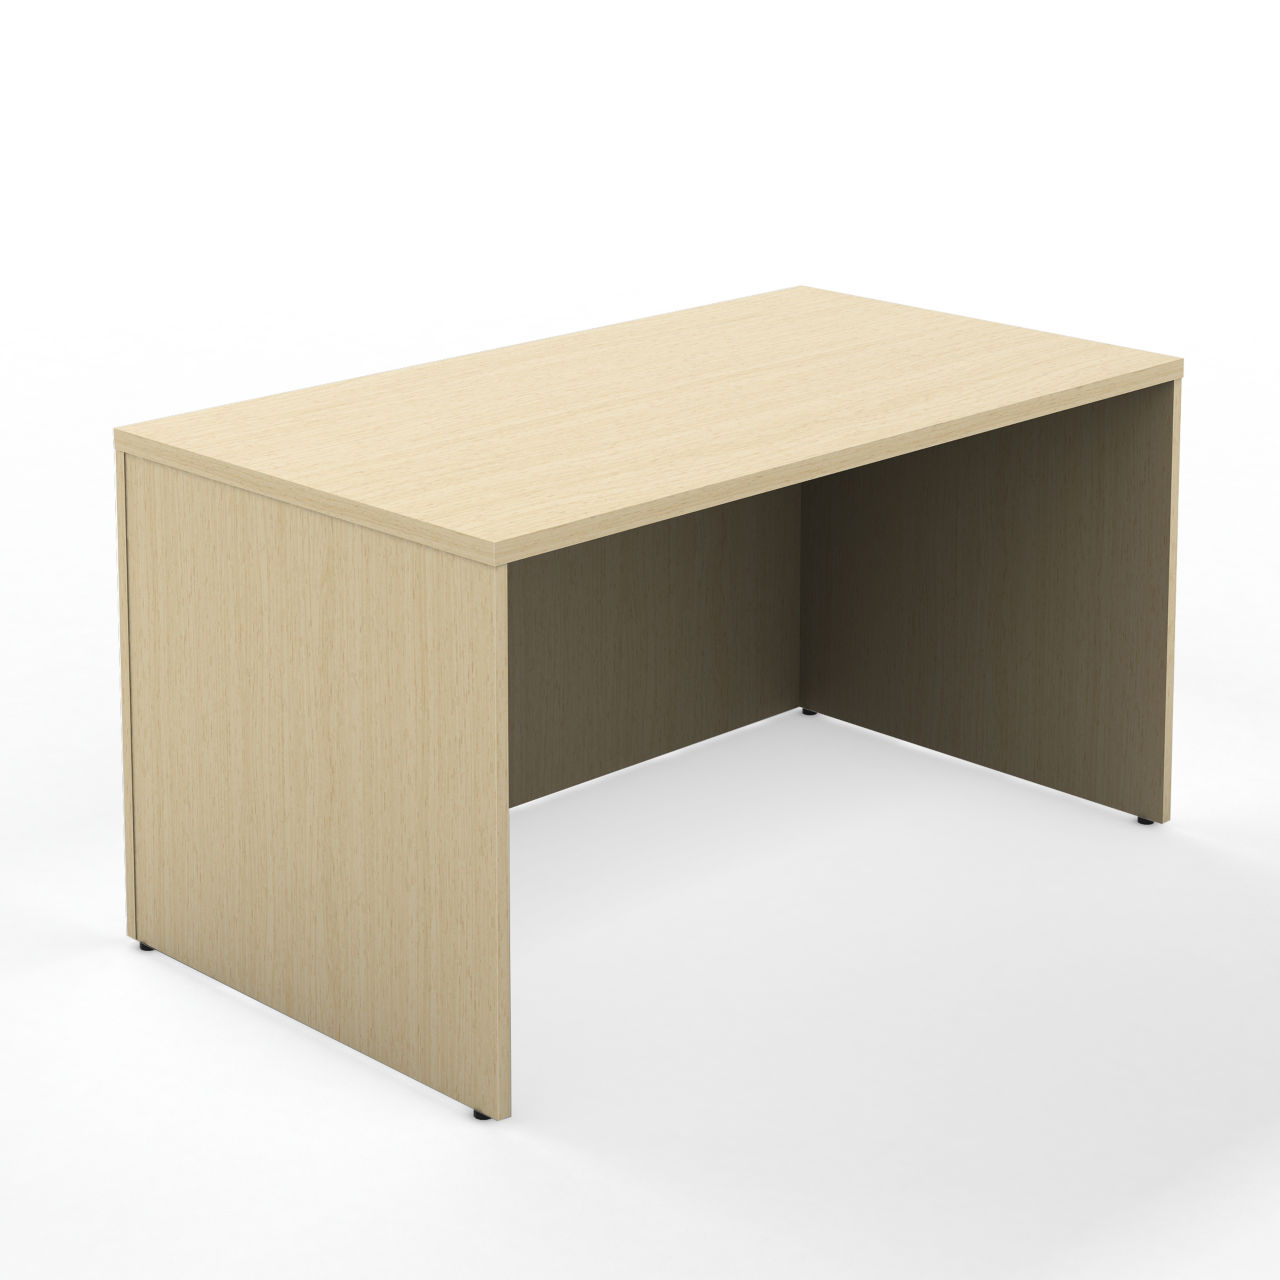 Currency 48 Rectangle Desk in Winter on Maple 24 in by Steelcase